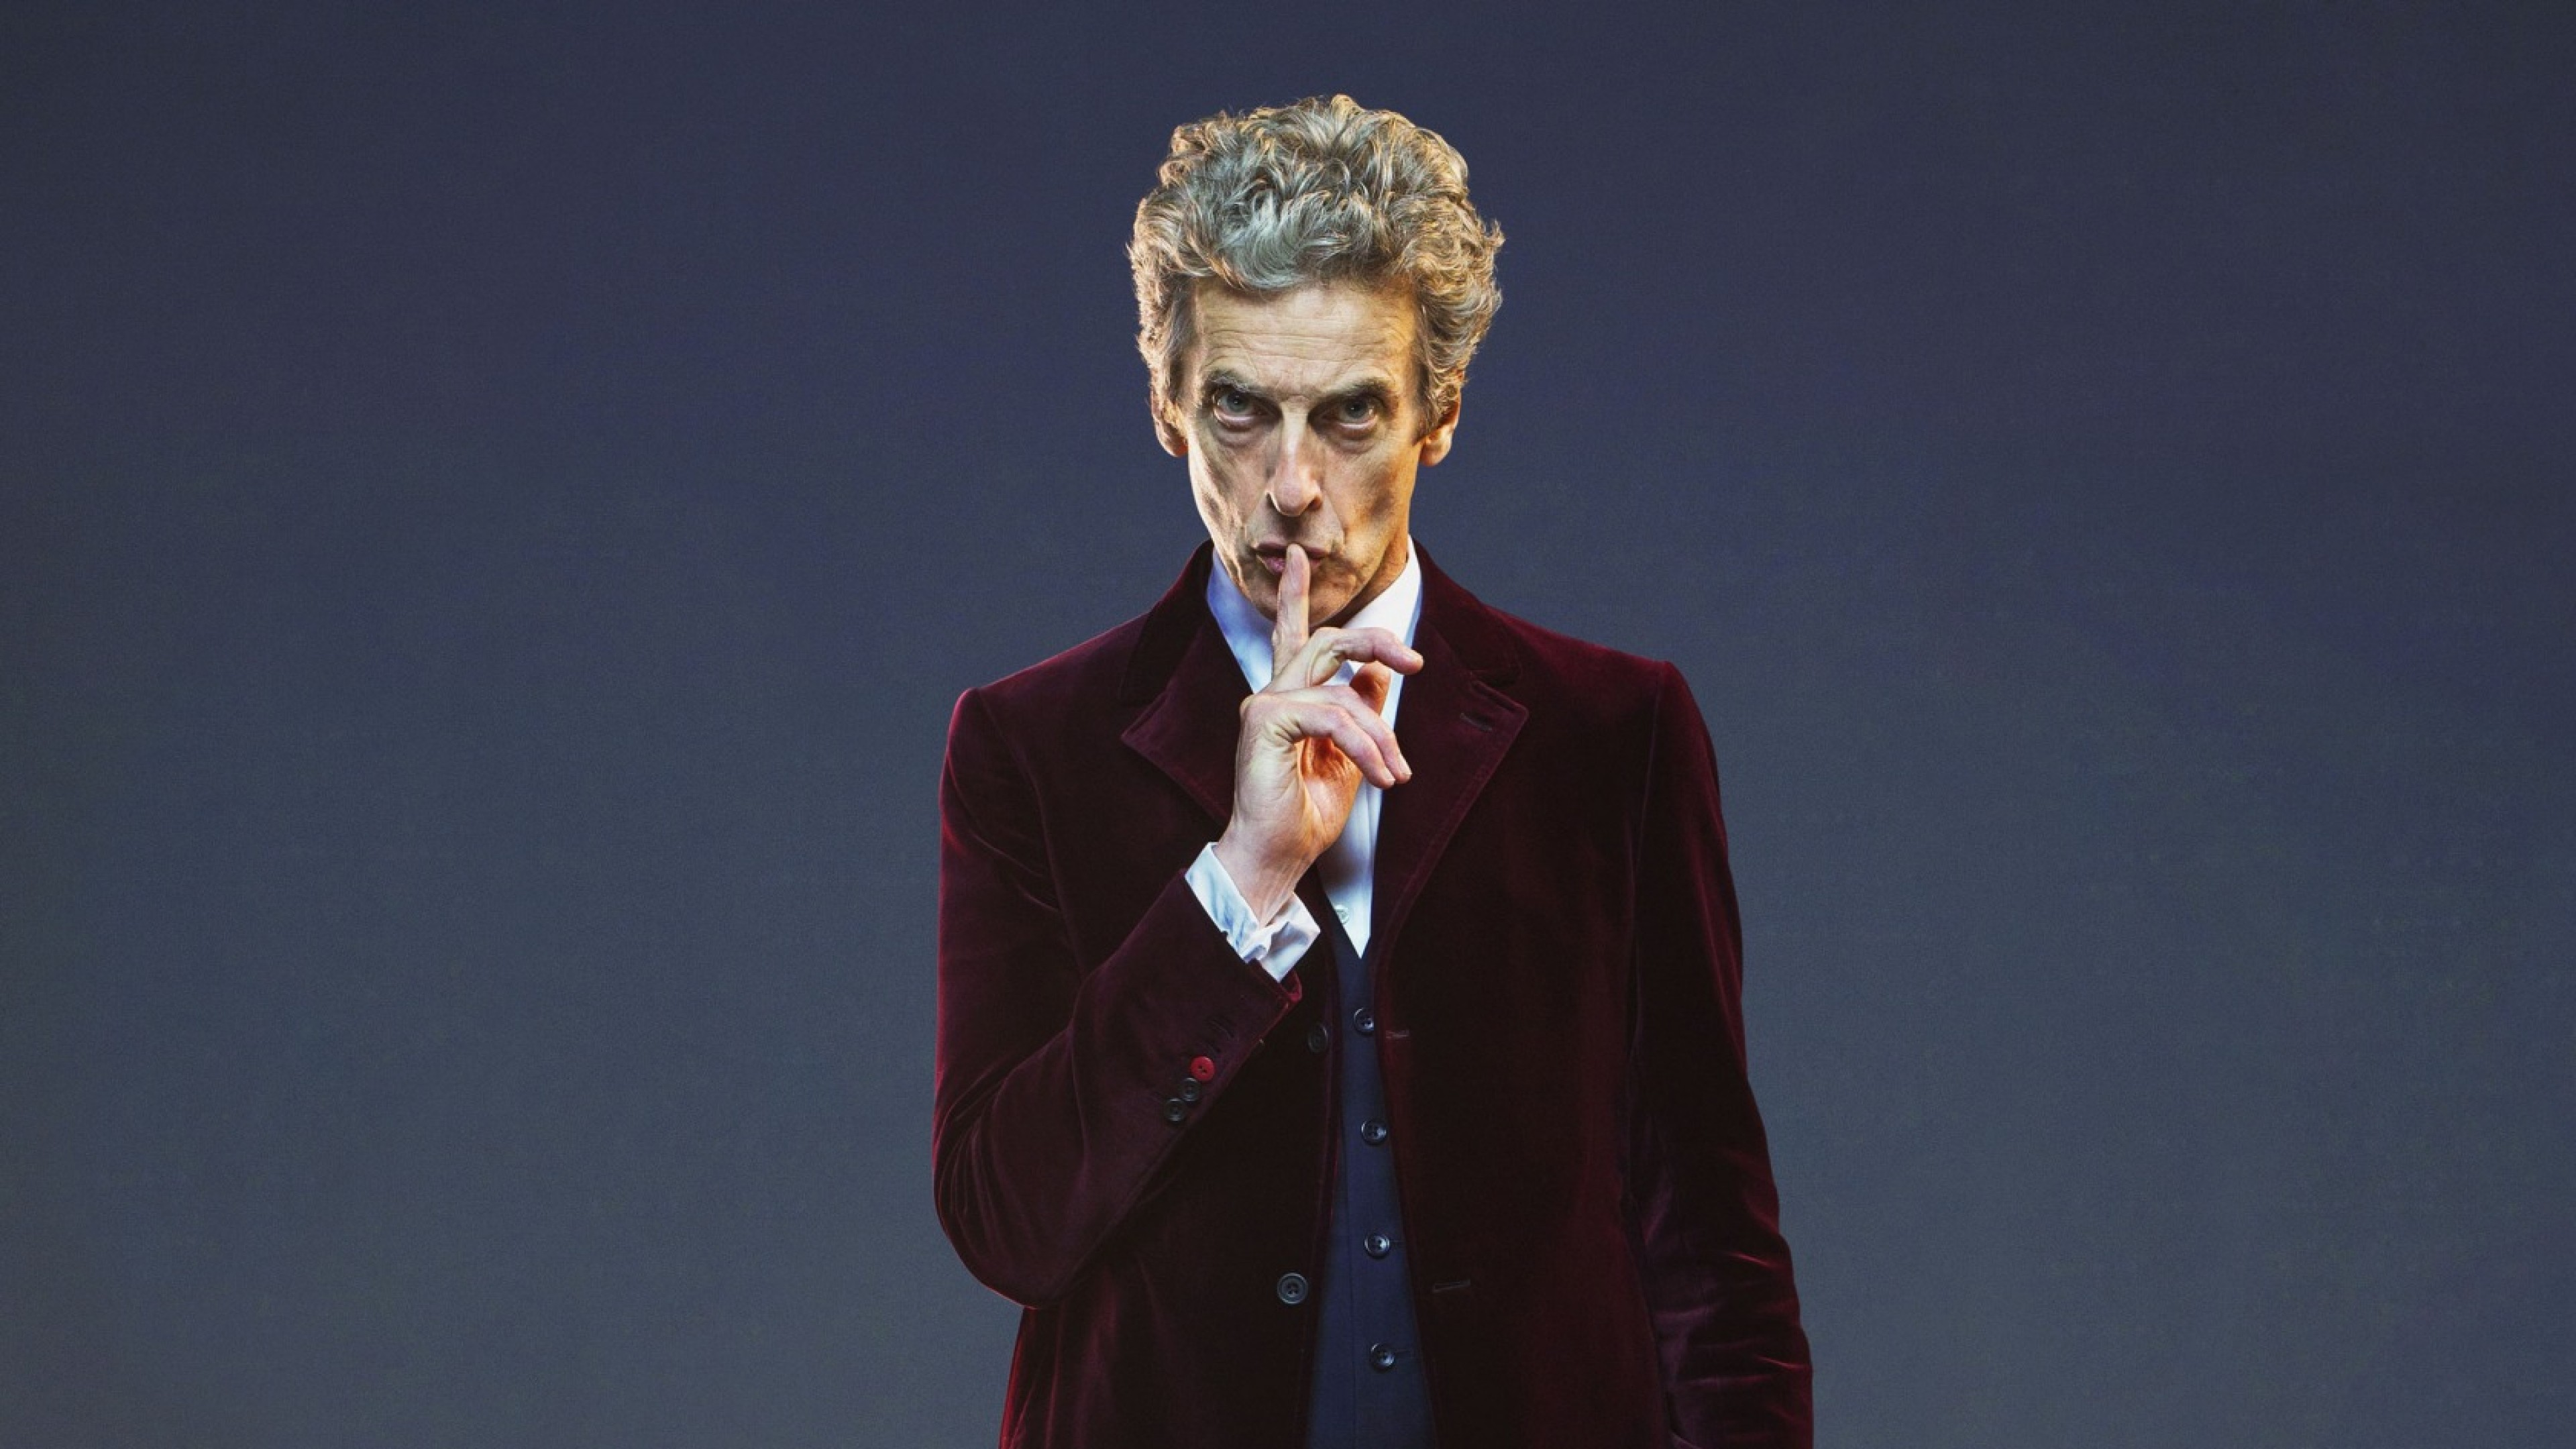 Doctor Who 12Th Doctor Wallpaper (76+ Images